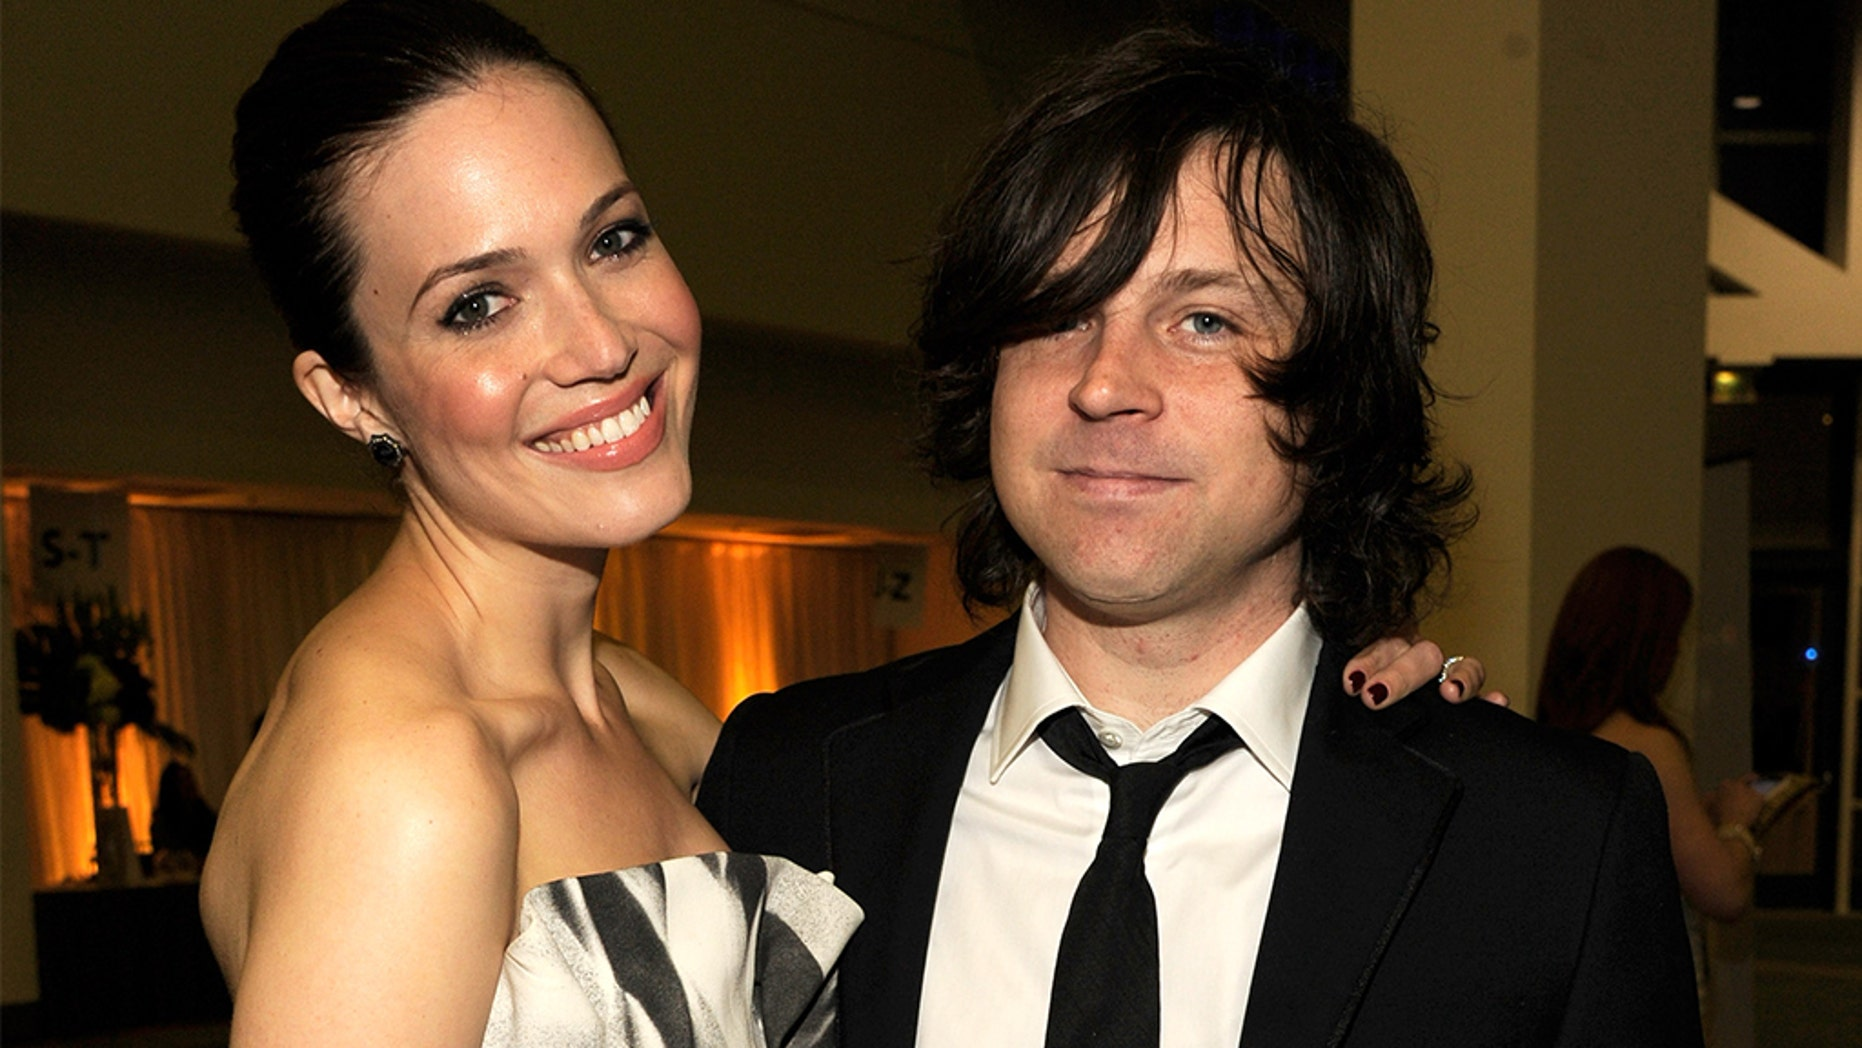 Mandy Moore discussed her past relationship with now-disgraced rocker Ryan Adams.